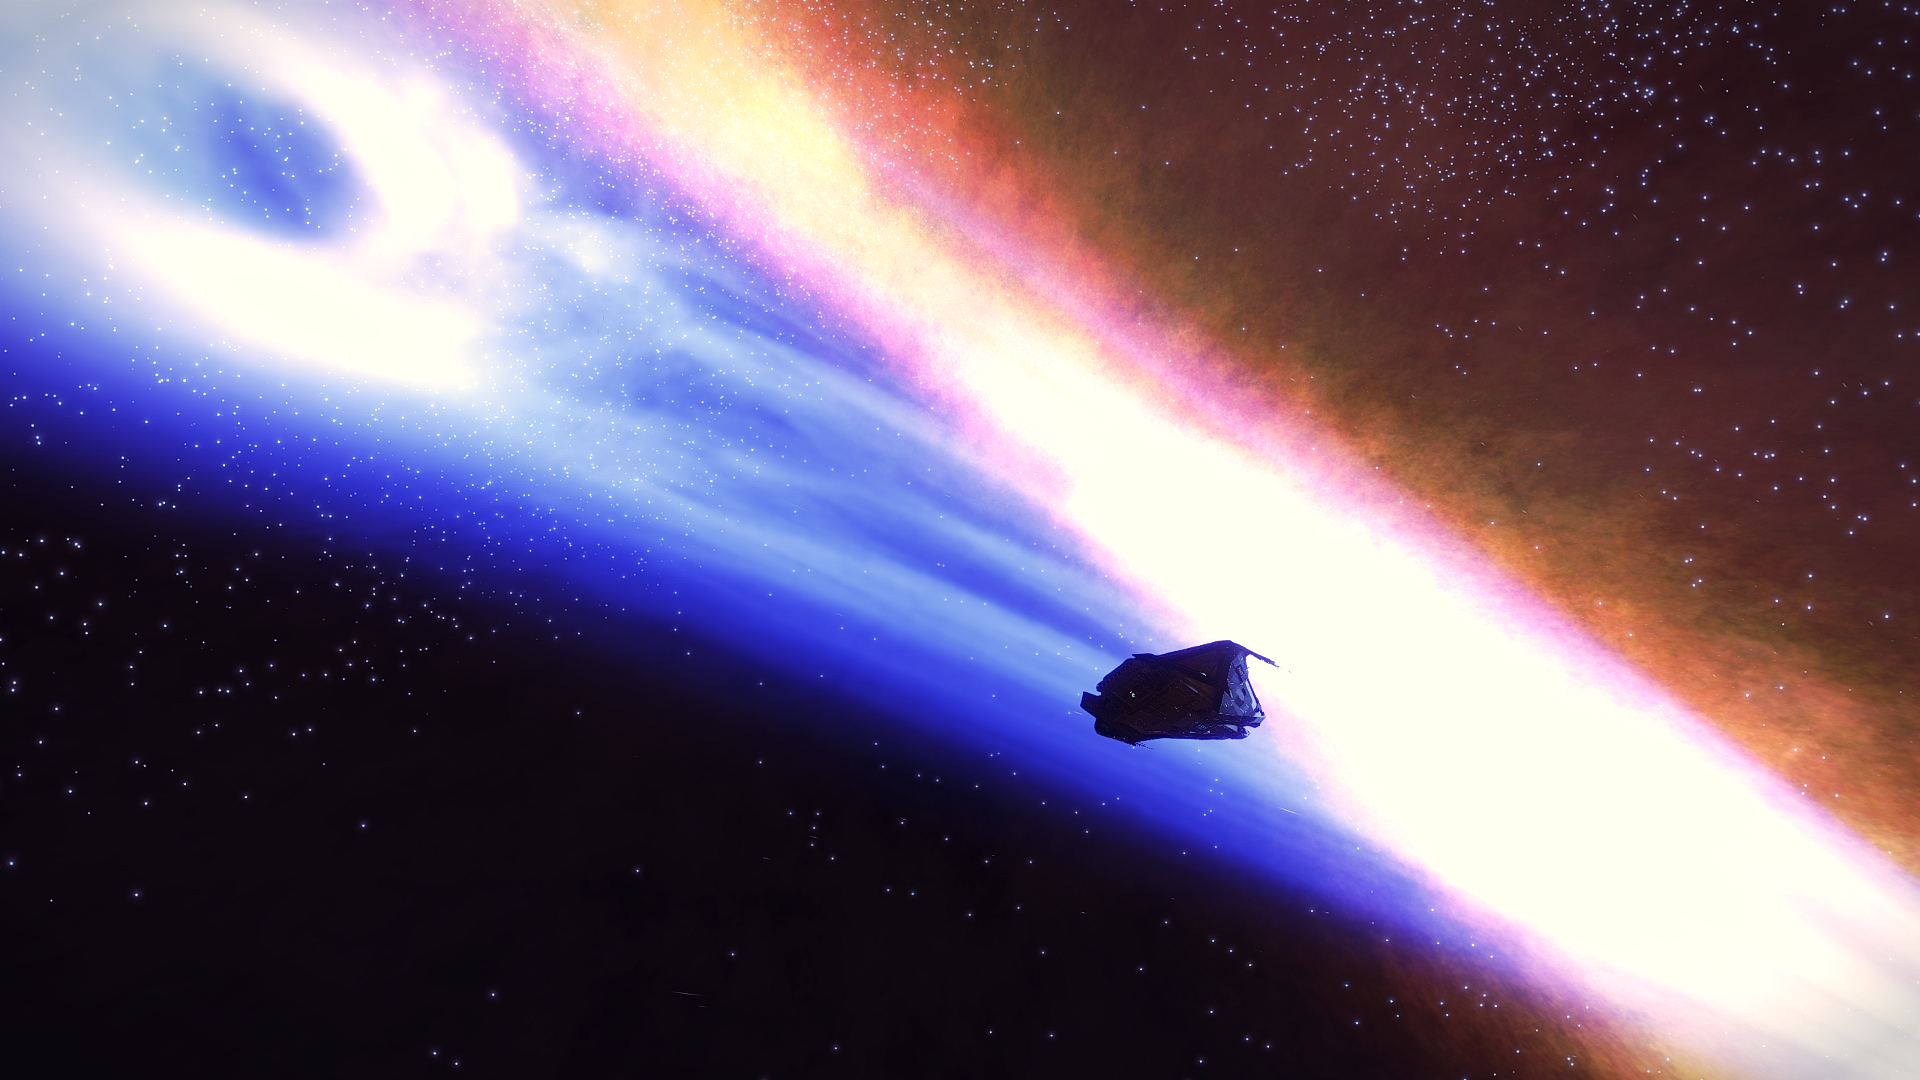 Elite's Distant Worlds 2 expedition: Building a starbase in the Milky Way